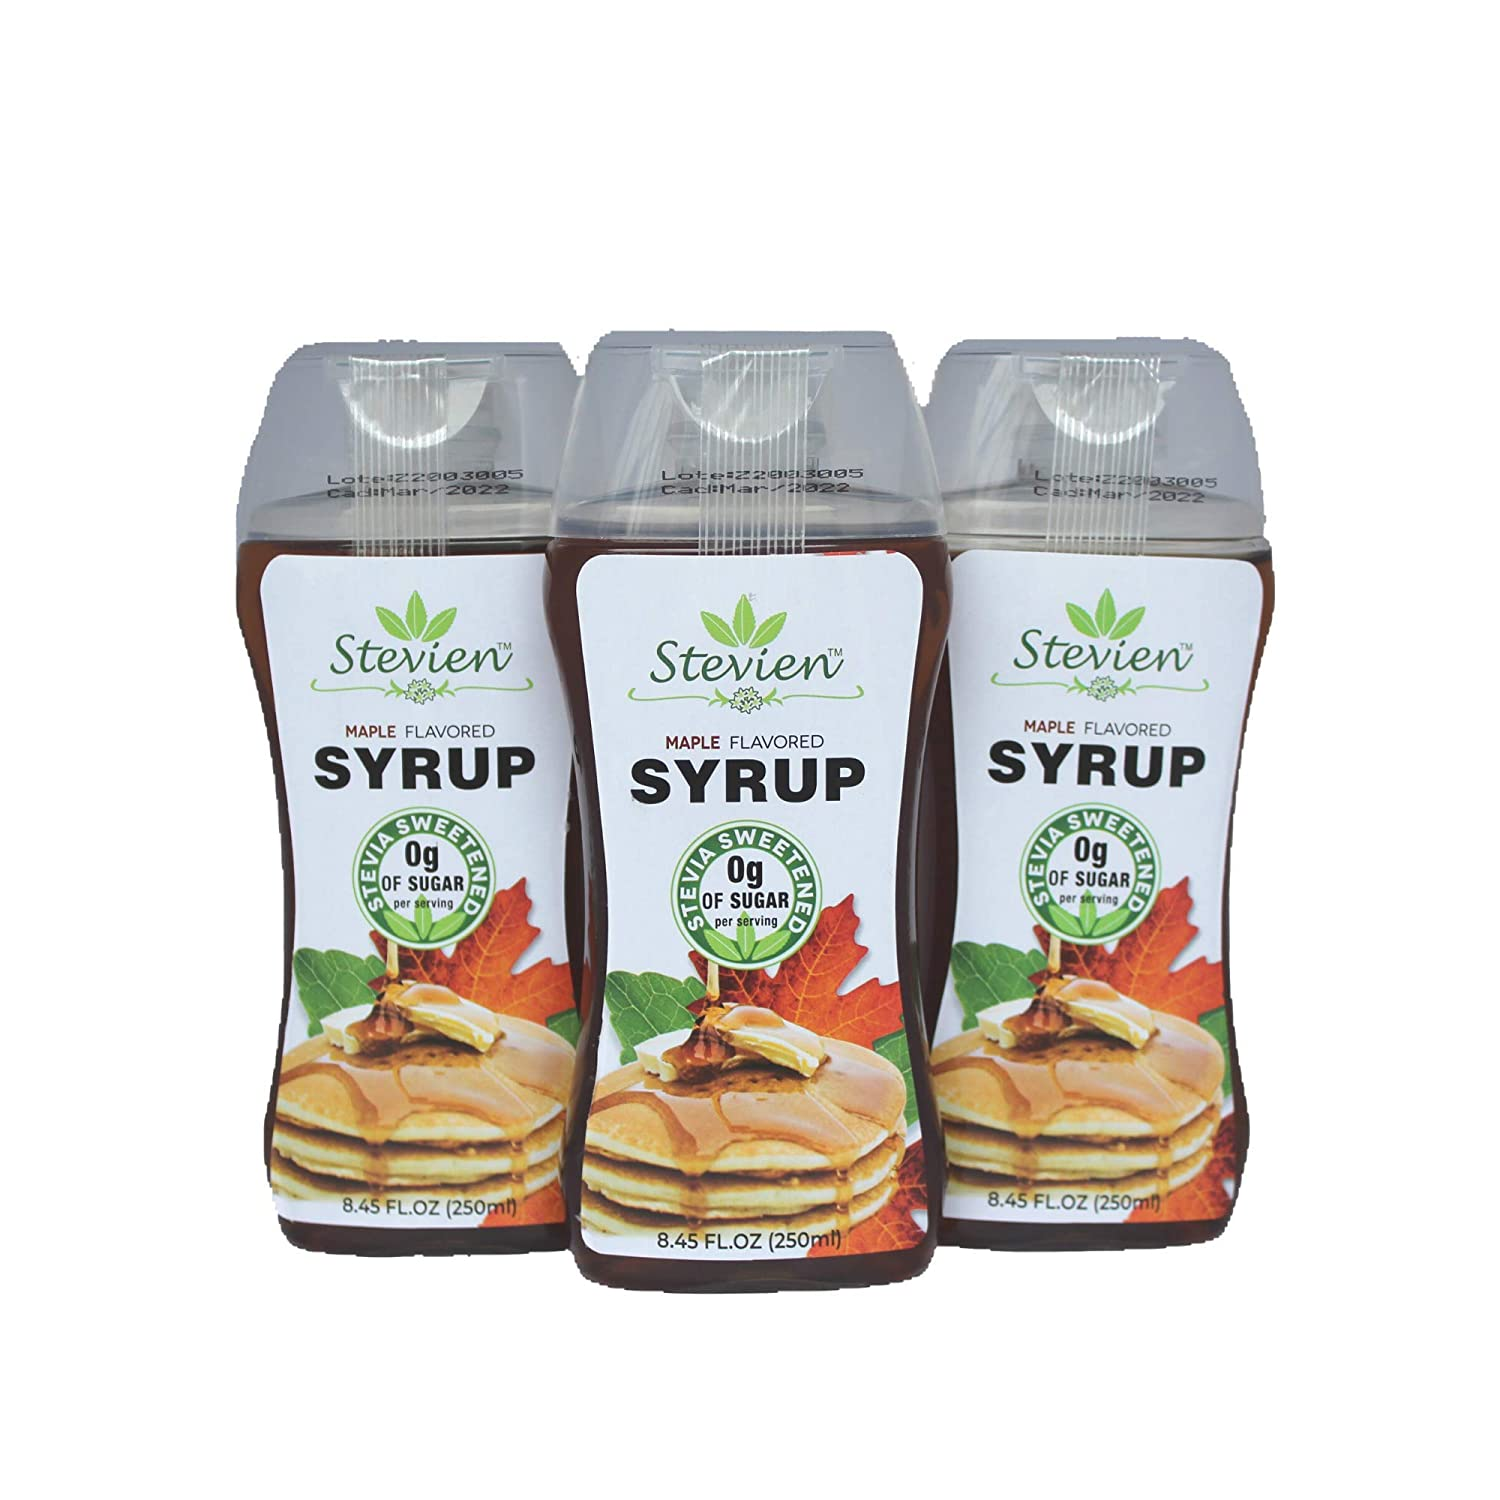 Stevien Keto Sugar Free Maple Syrup - Vegan - Low Carb - Gluten Free - Low Calorie - Sweetened with Organic Stevia (1)